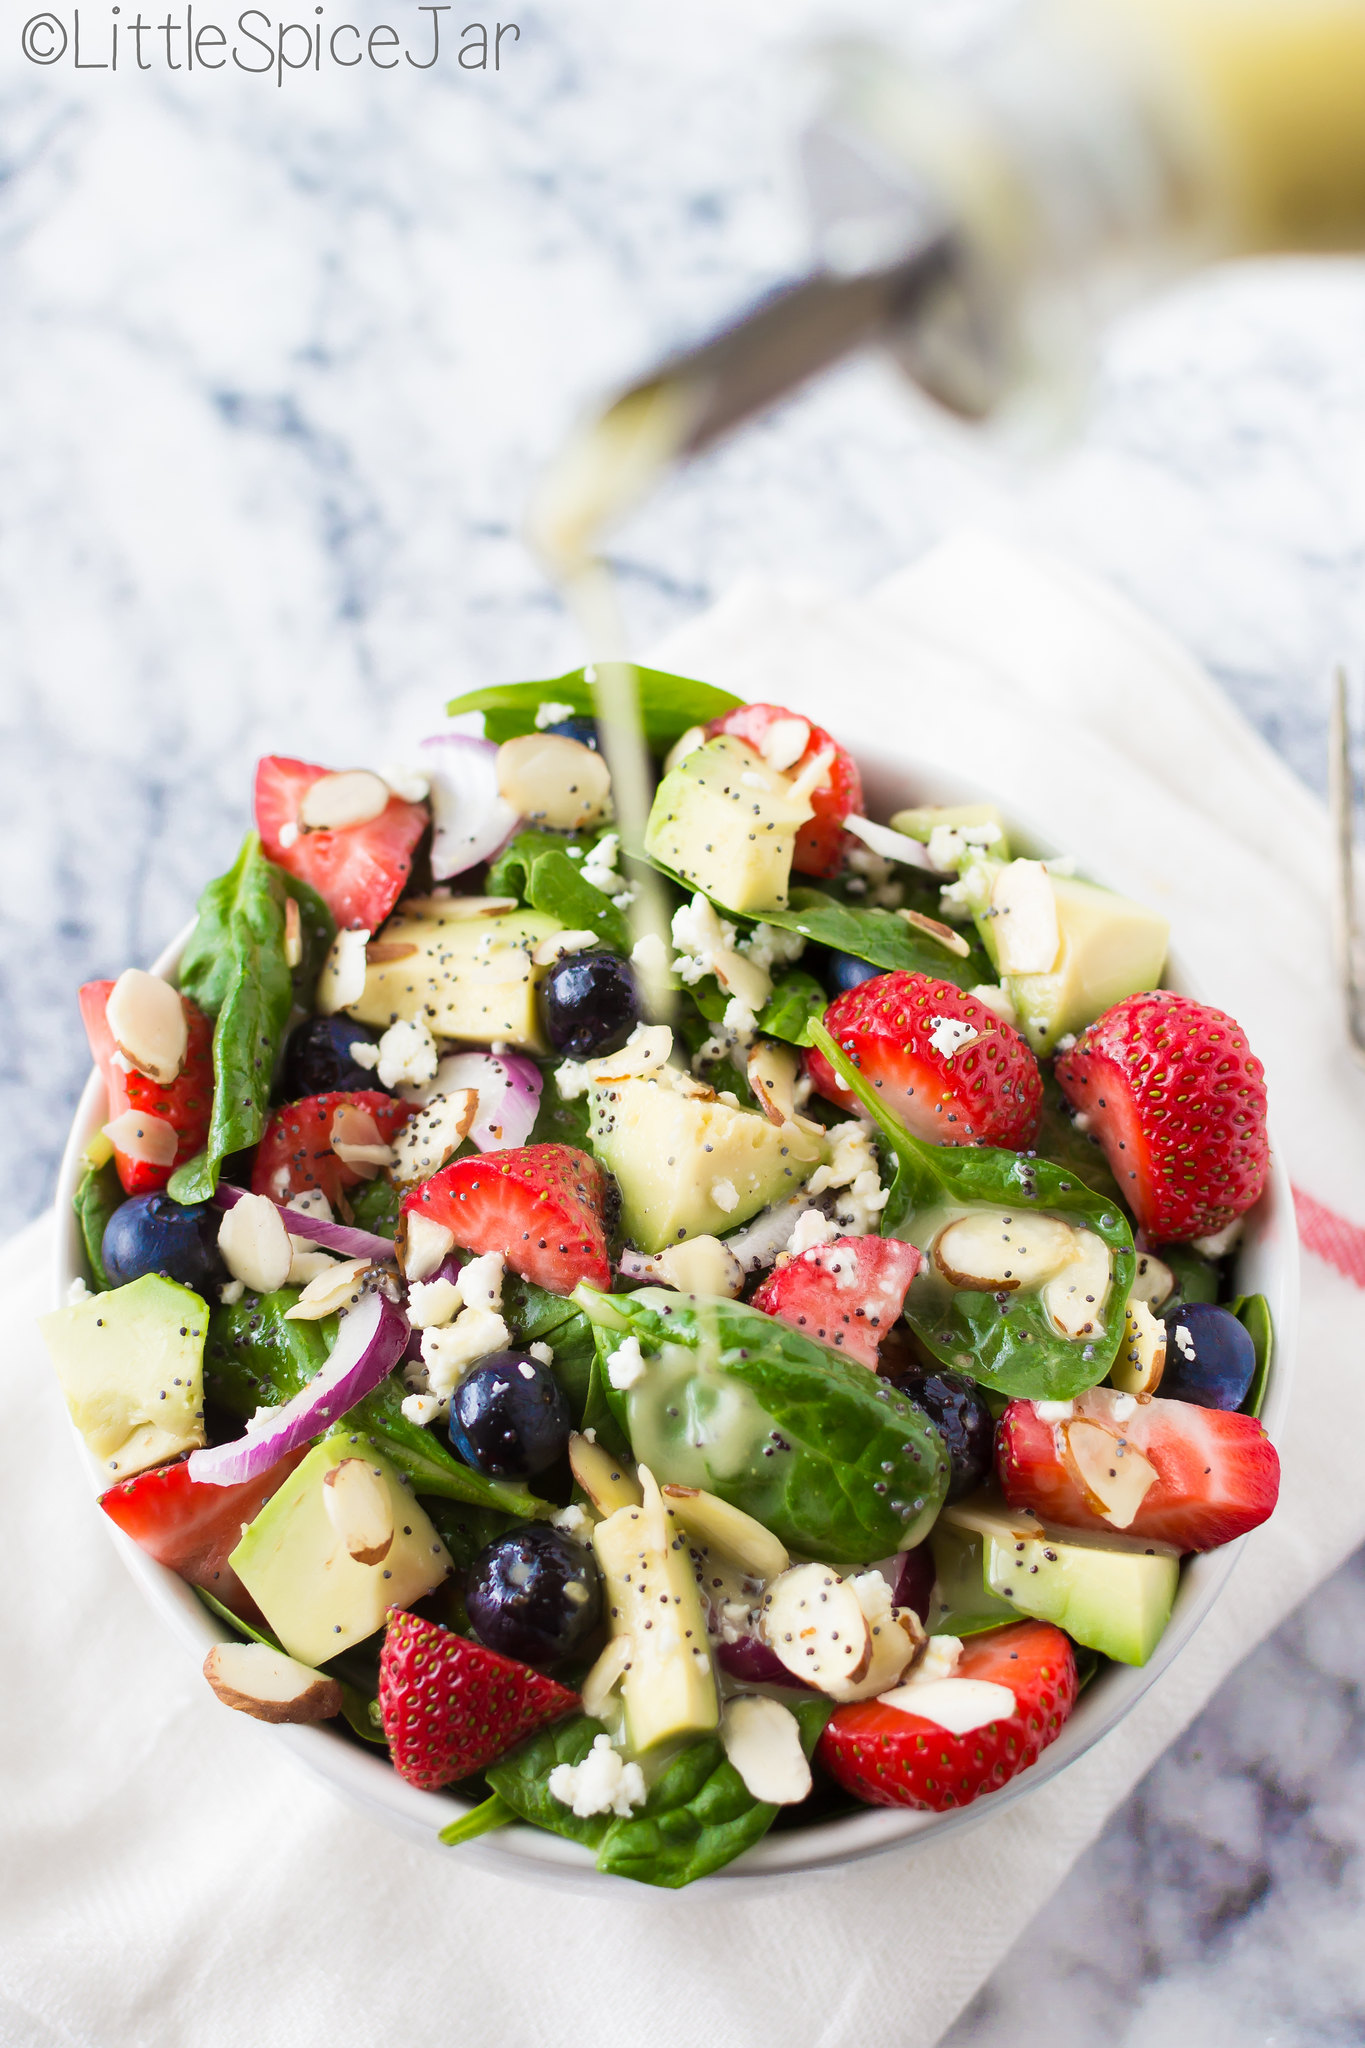 Strawberry Spinach Salad with Citrus Poppyseed Dressing 15